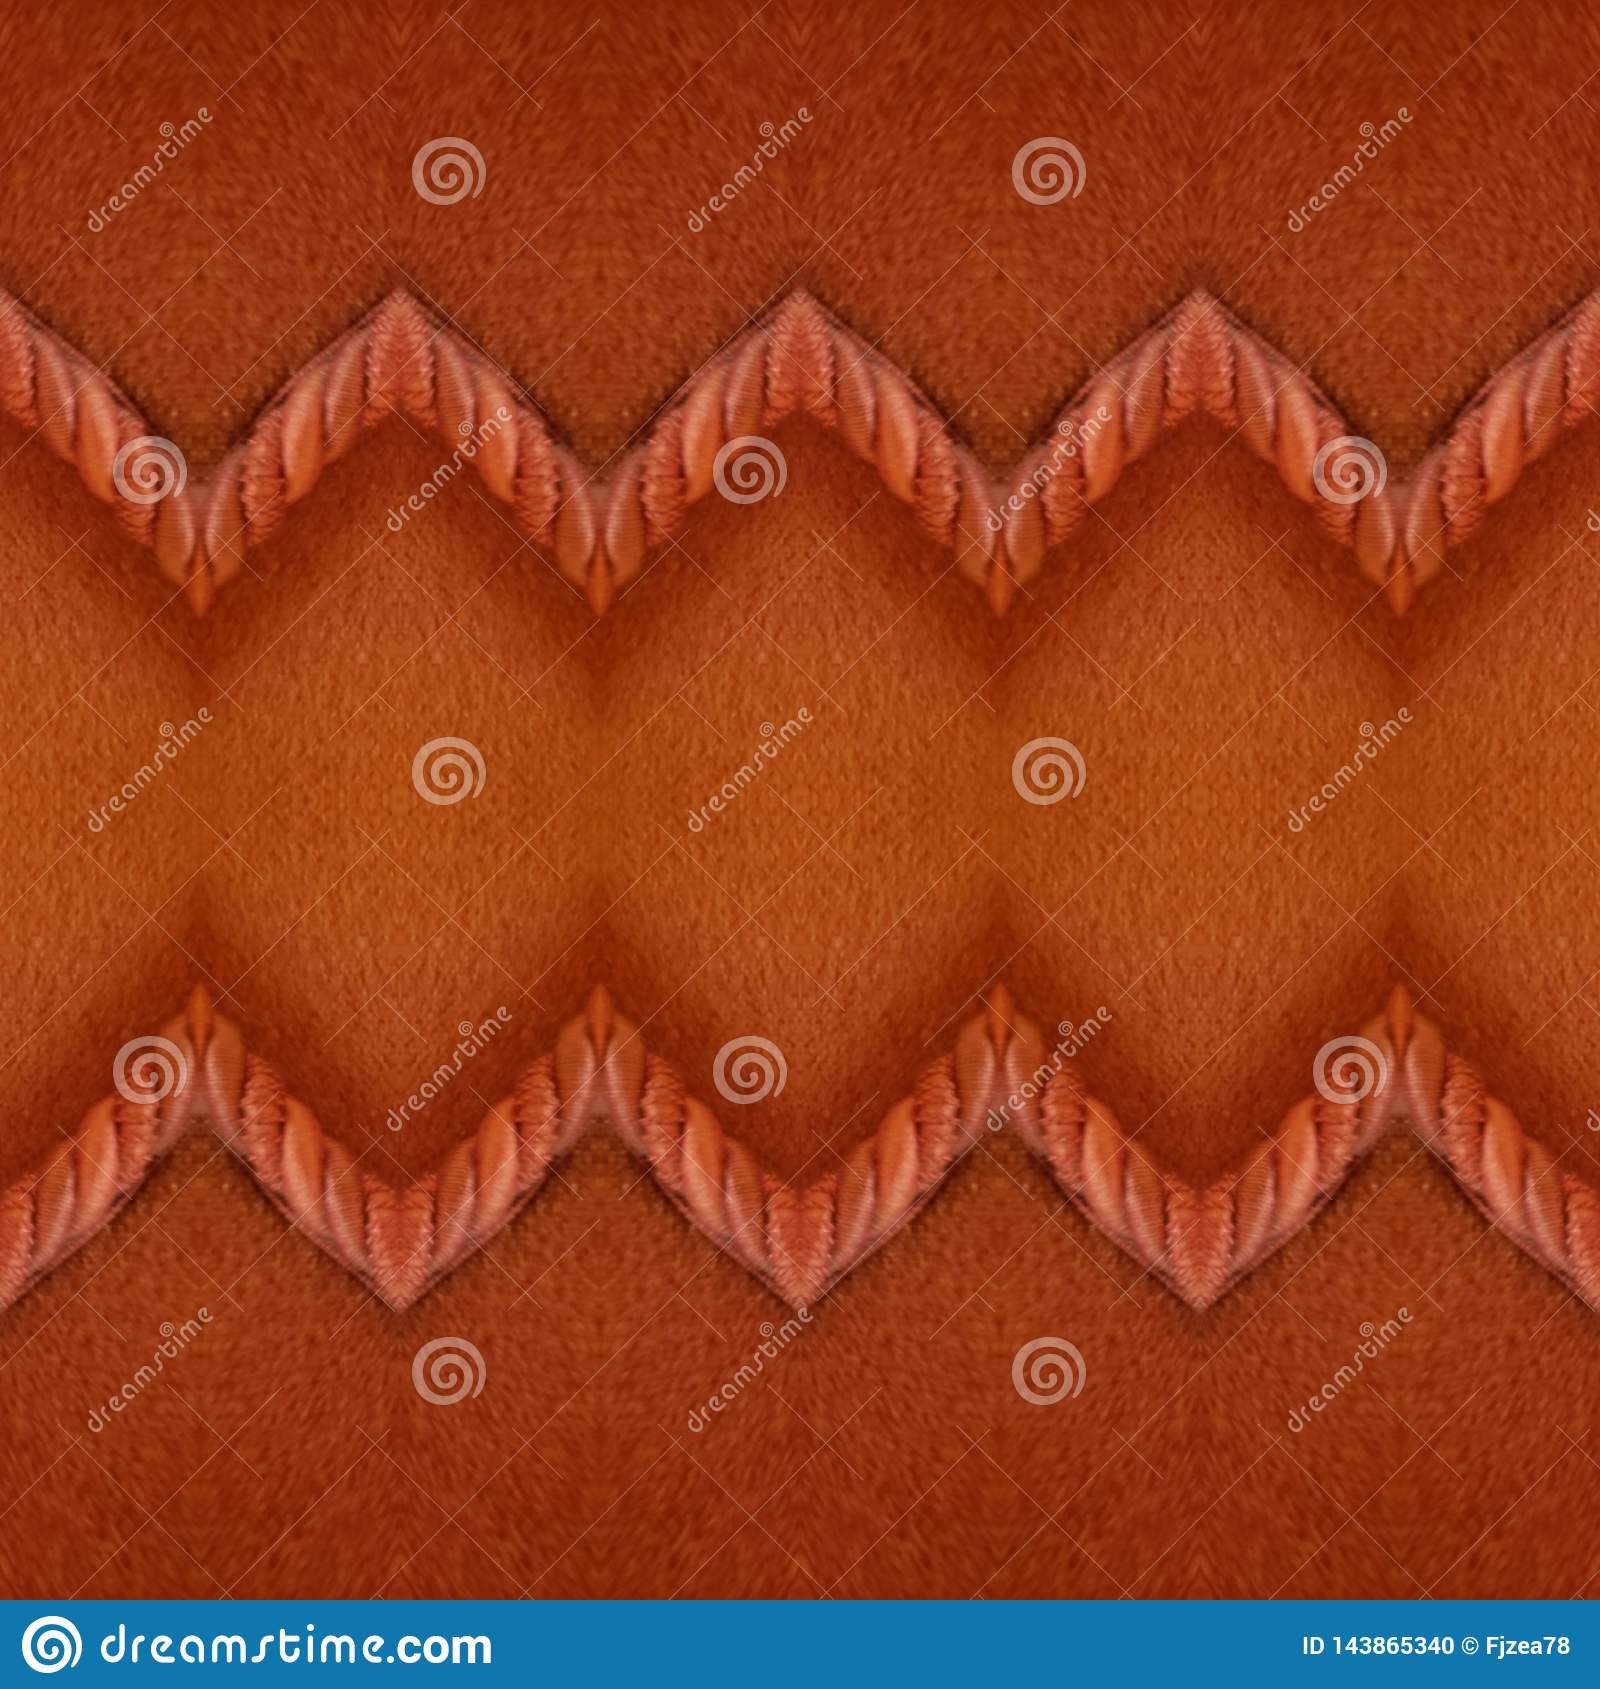 abstract design with fabric and cord in red color, background and texture